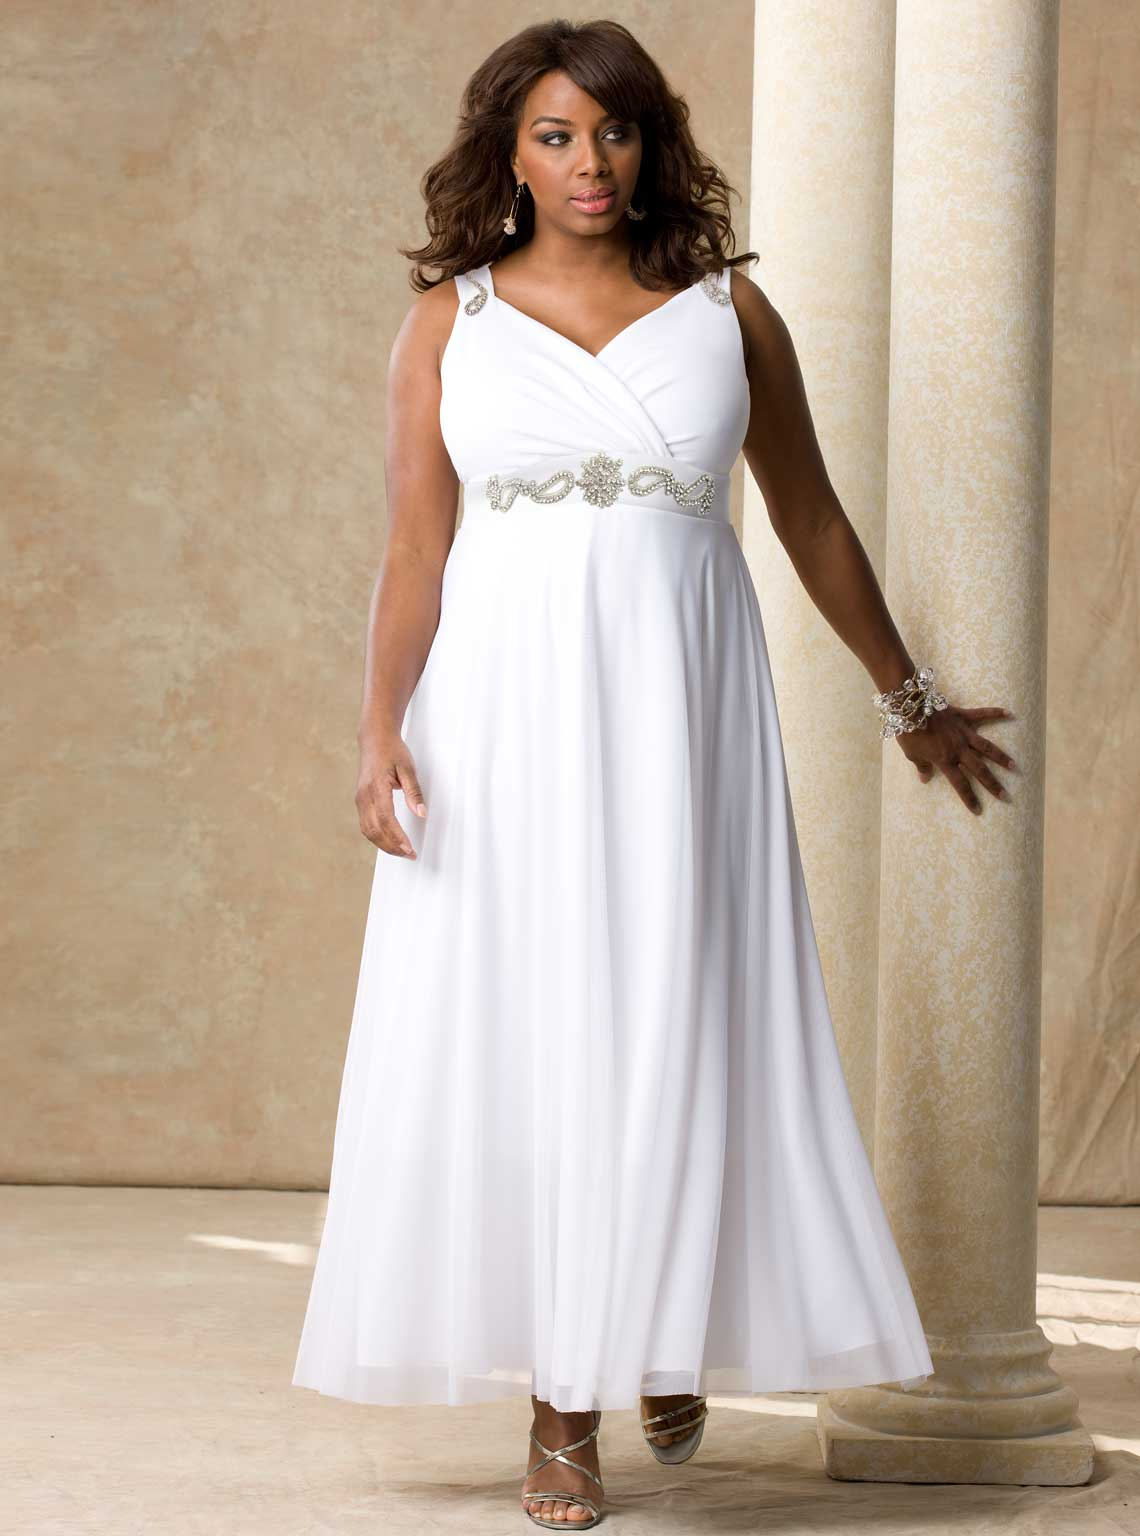 Wedding Dress Plus Size Of Best Wedding Ideas Searching For An Affordable Plus Size